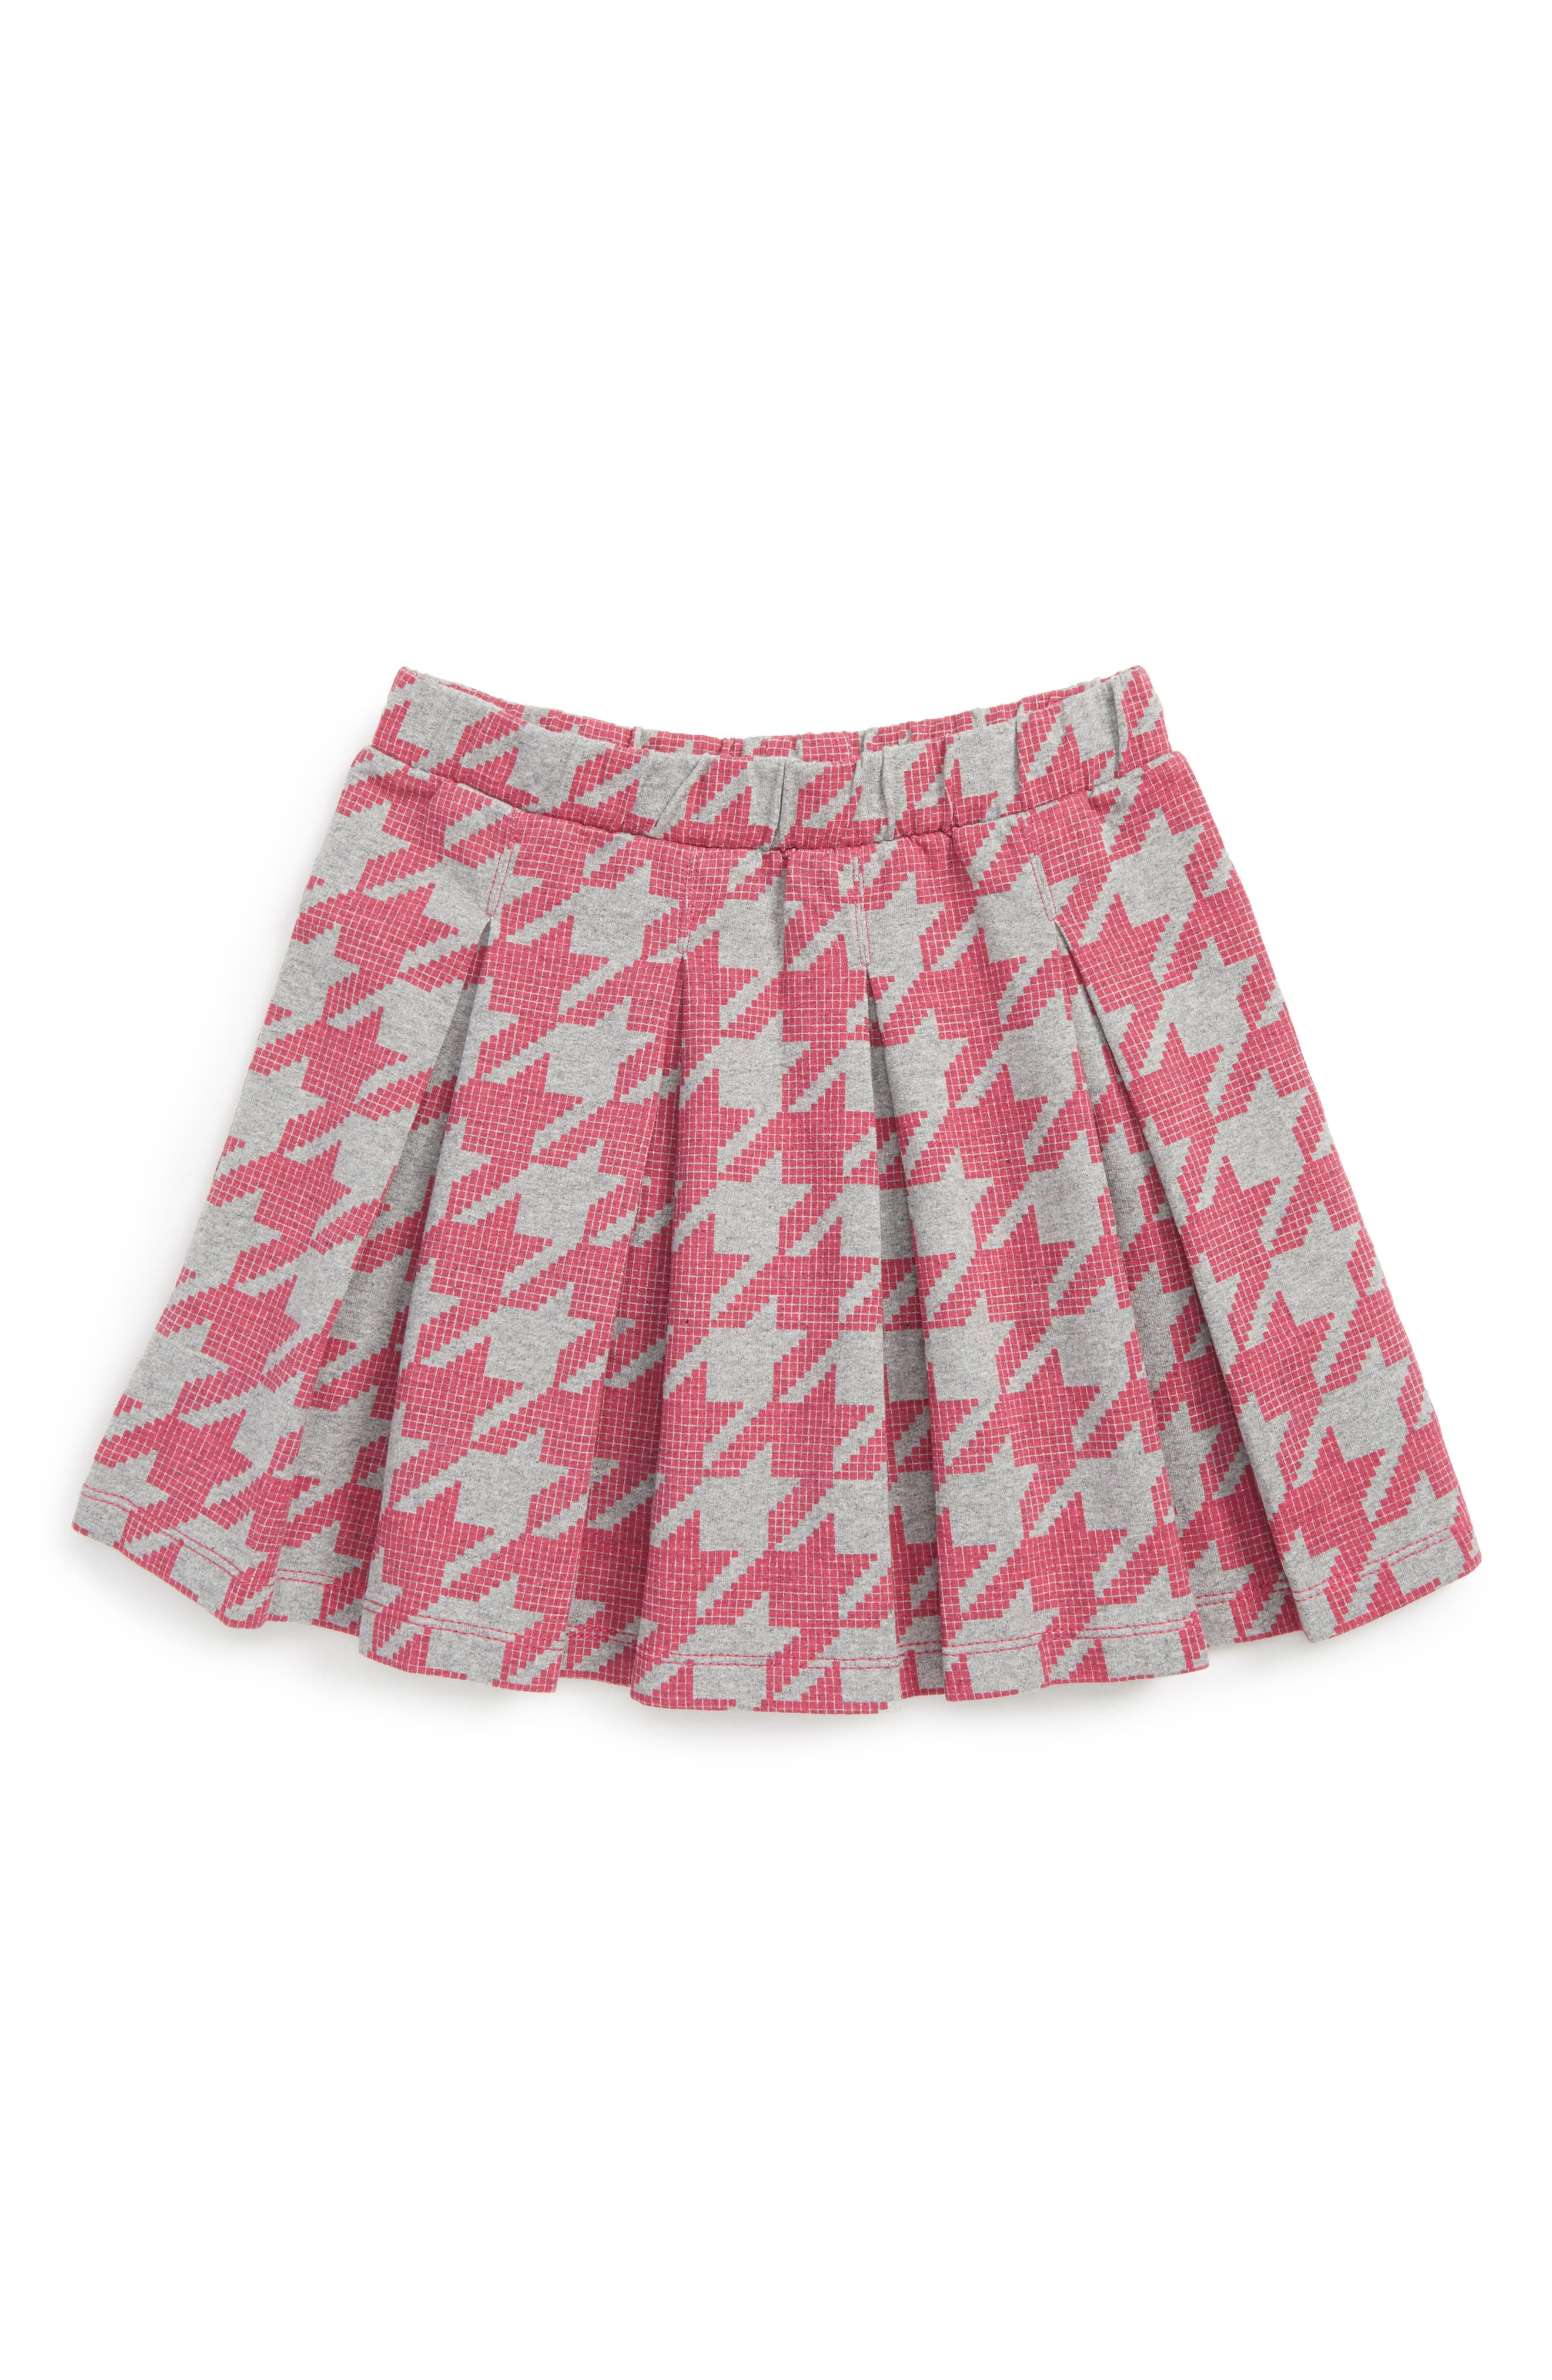 Houndstooth Skirt,                             Main thumbnail 1, color,                             651